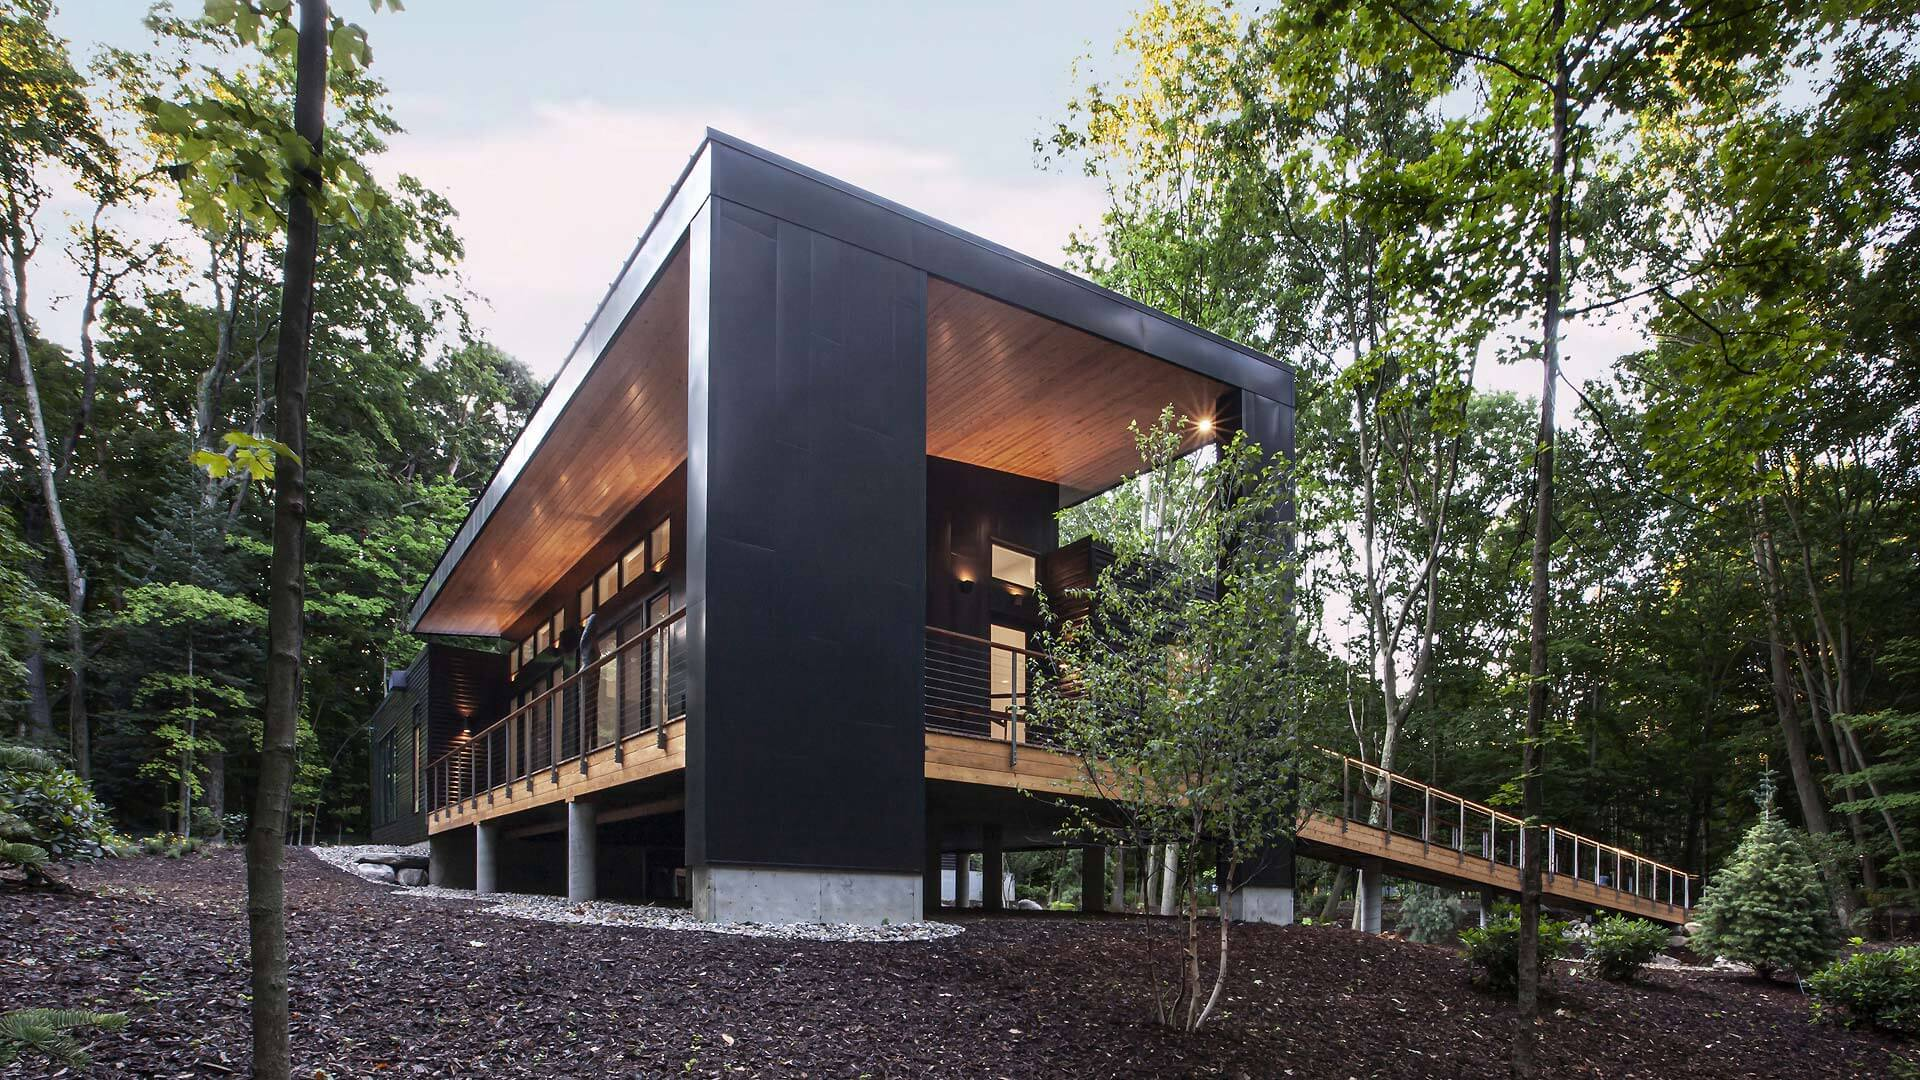 Entry Pier and West Porch overlook Pier Cove Valley - Bridge House - Fenneville, Michigan - Lake Michigan - HAUS | Architecture For Modern Lifestyles